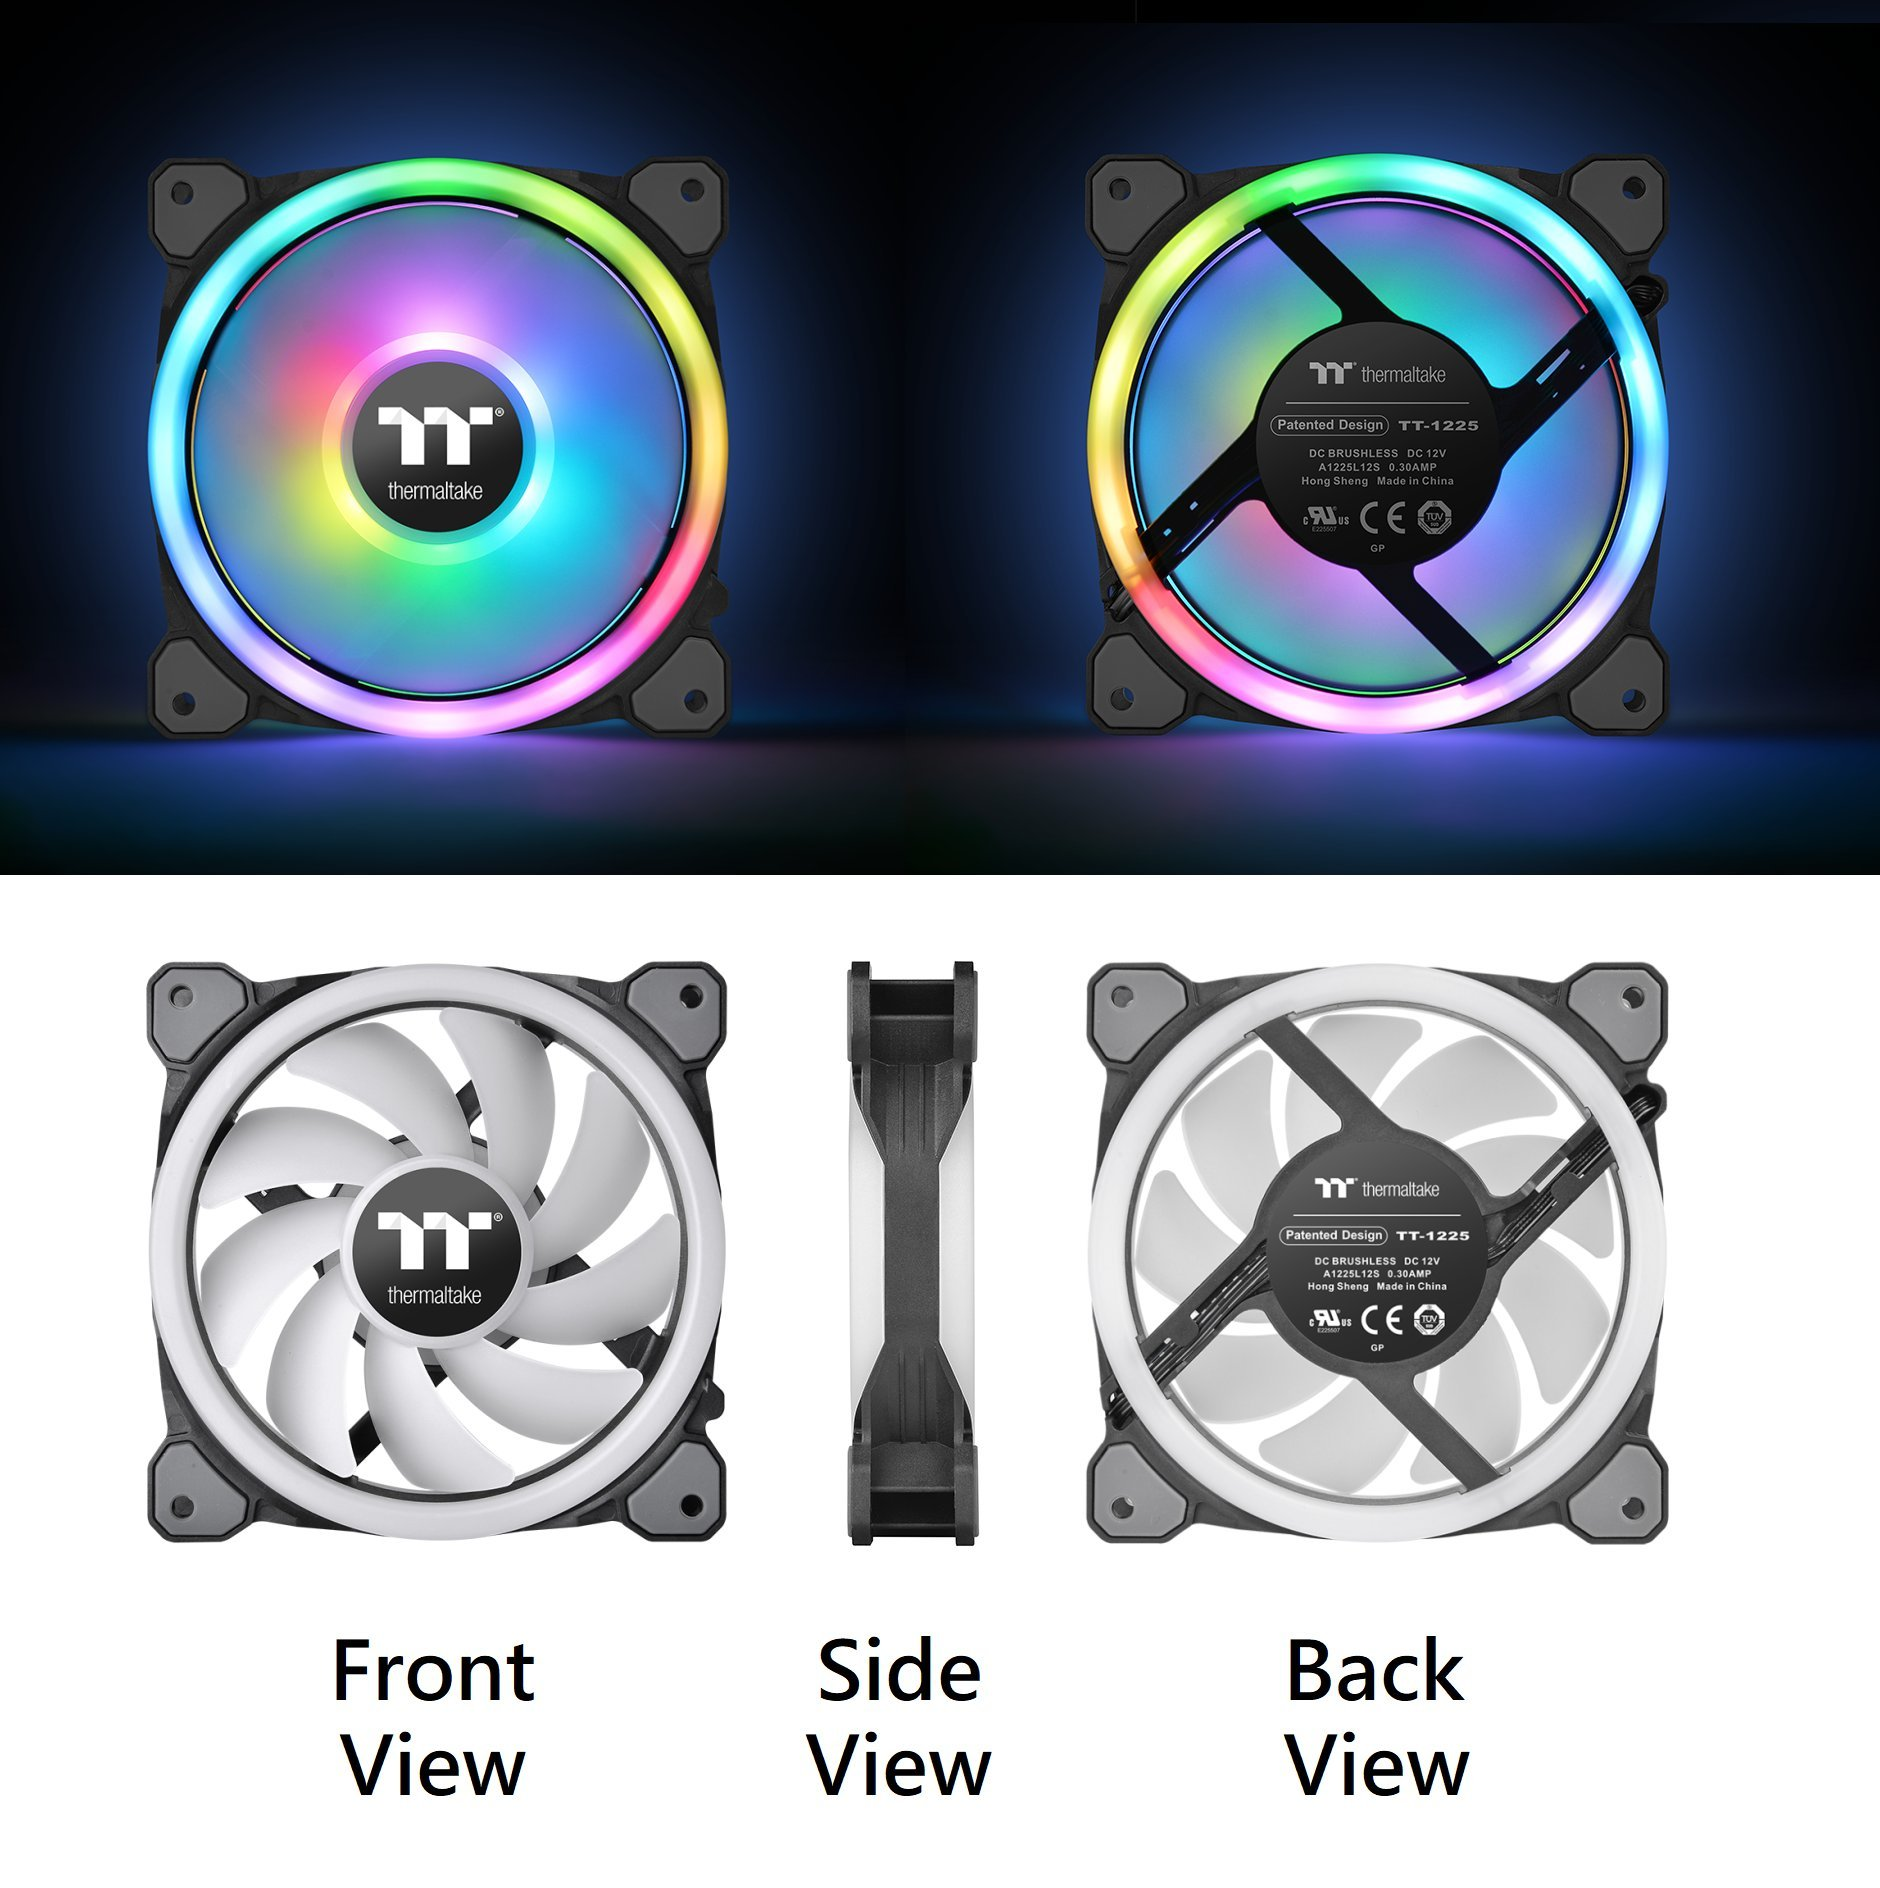 Thermaltake Riing Trio 12 RGB TT Premium Edition 120mm Software Enabled 30 Addressable LED 9 Blades Case/Radiator Fan - 3 Pack - CL-F072-PL12SW-A by Thermaltake (Image #3)